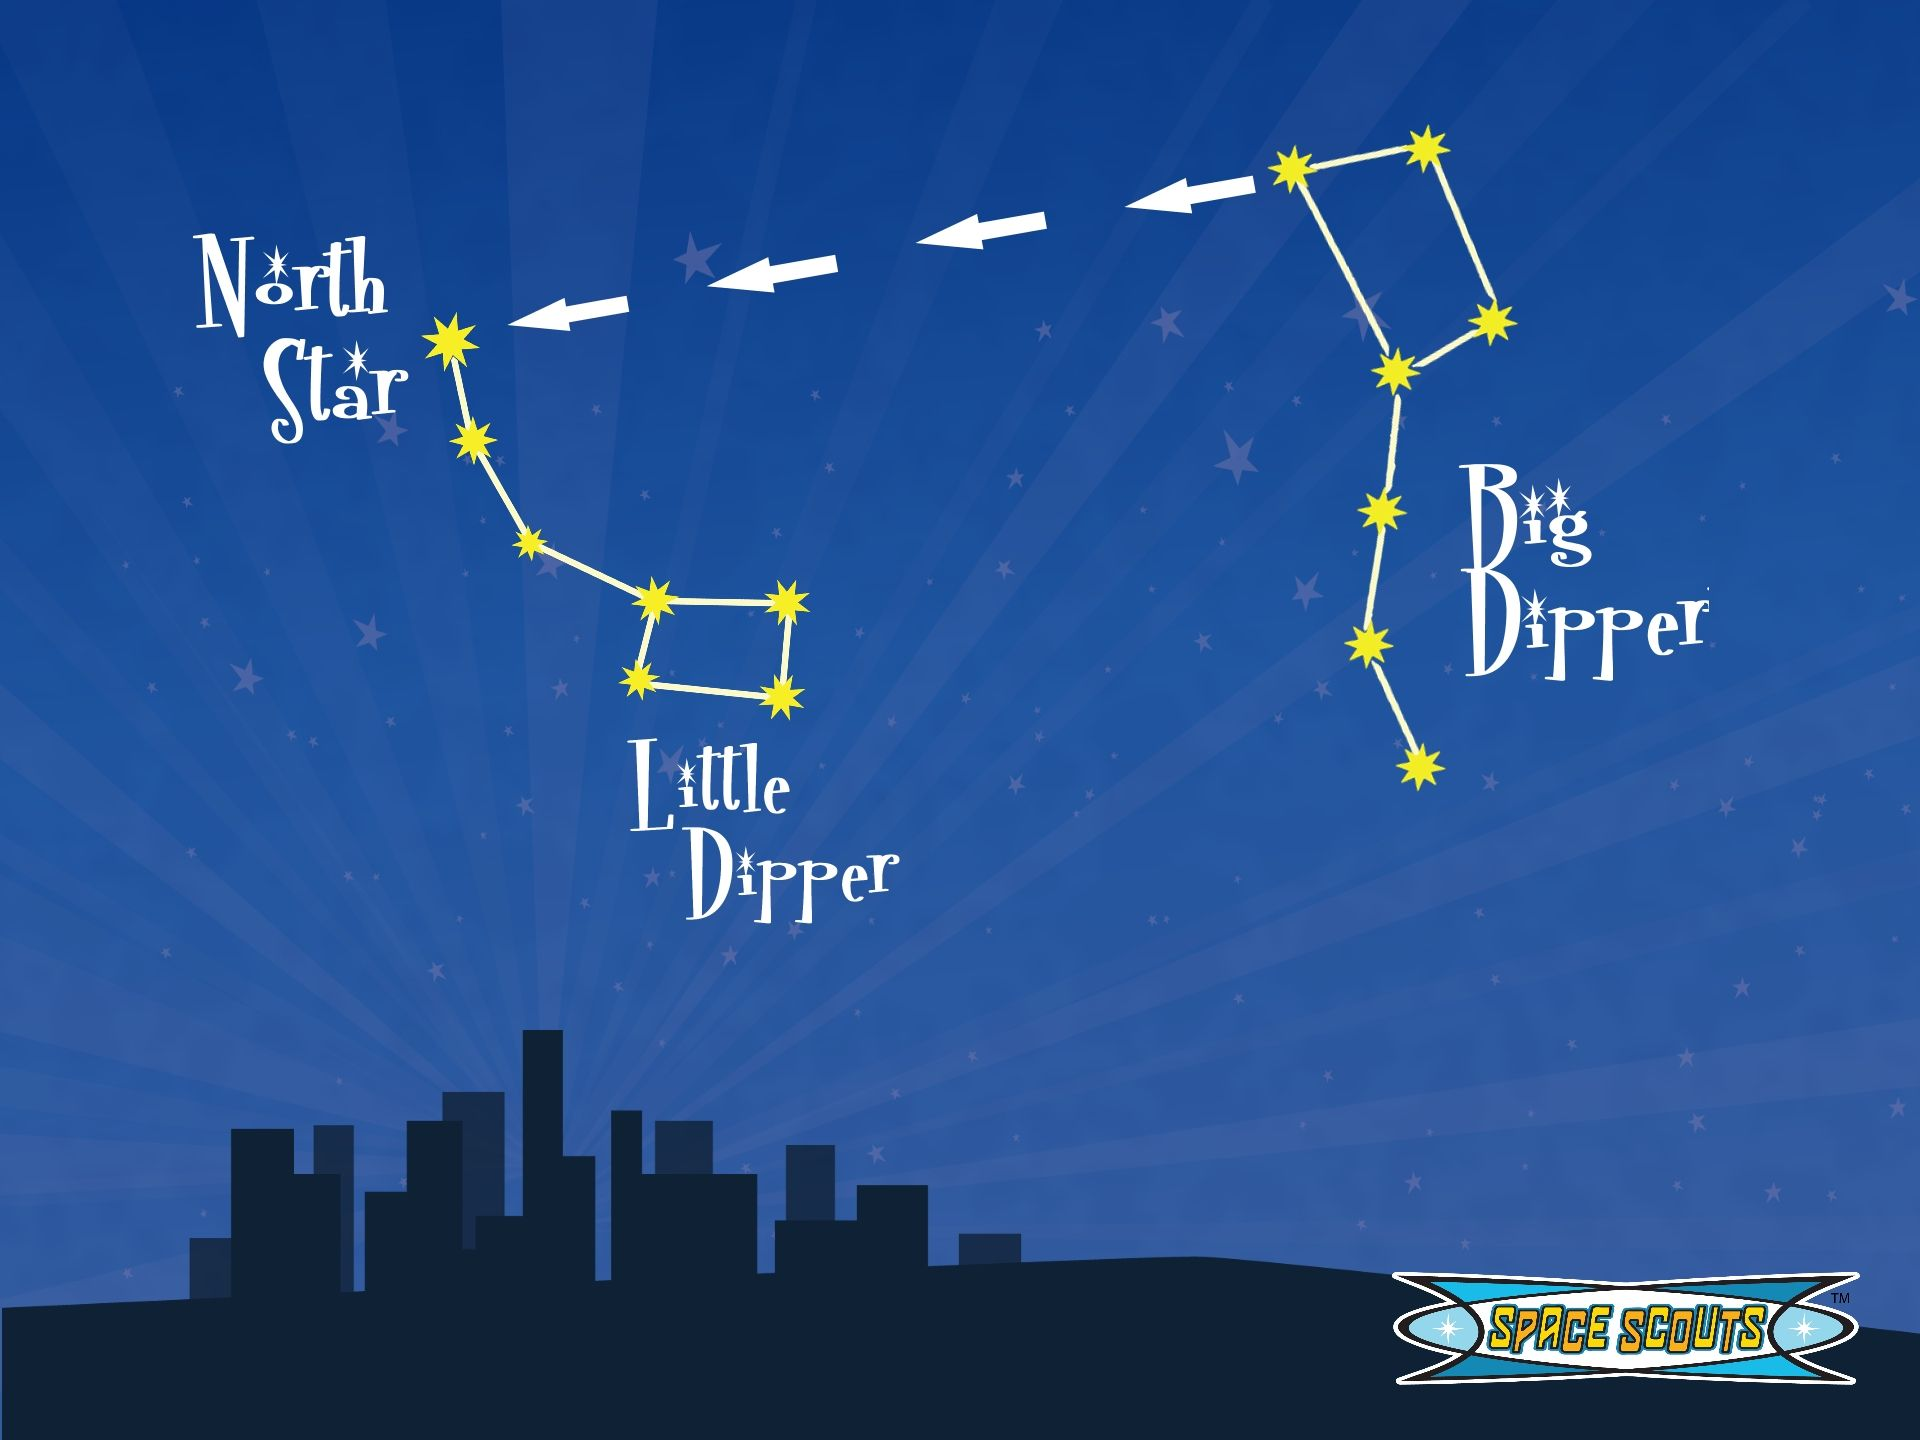 Big Dipper Points To North Star With Images